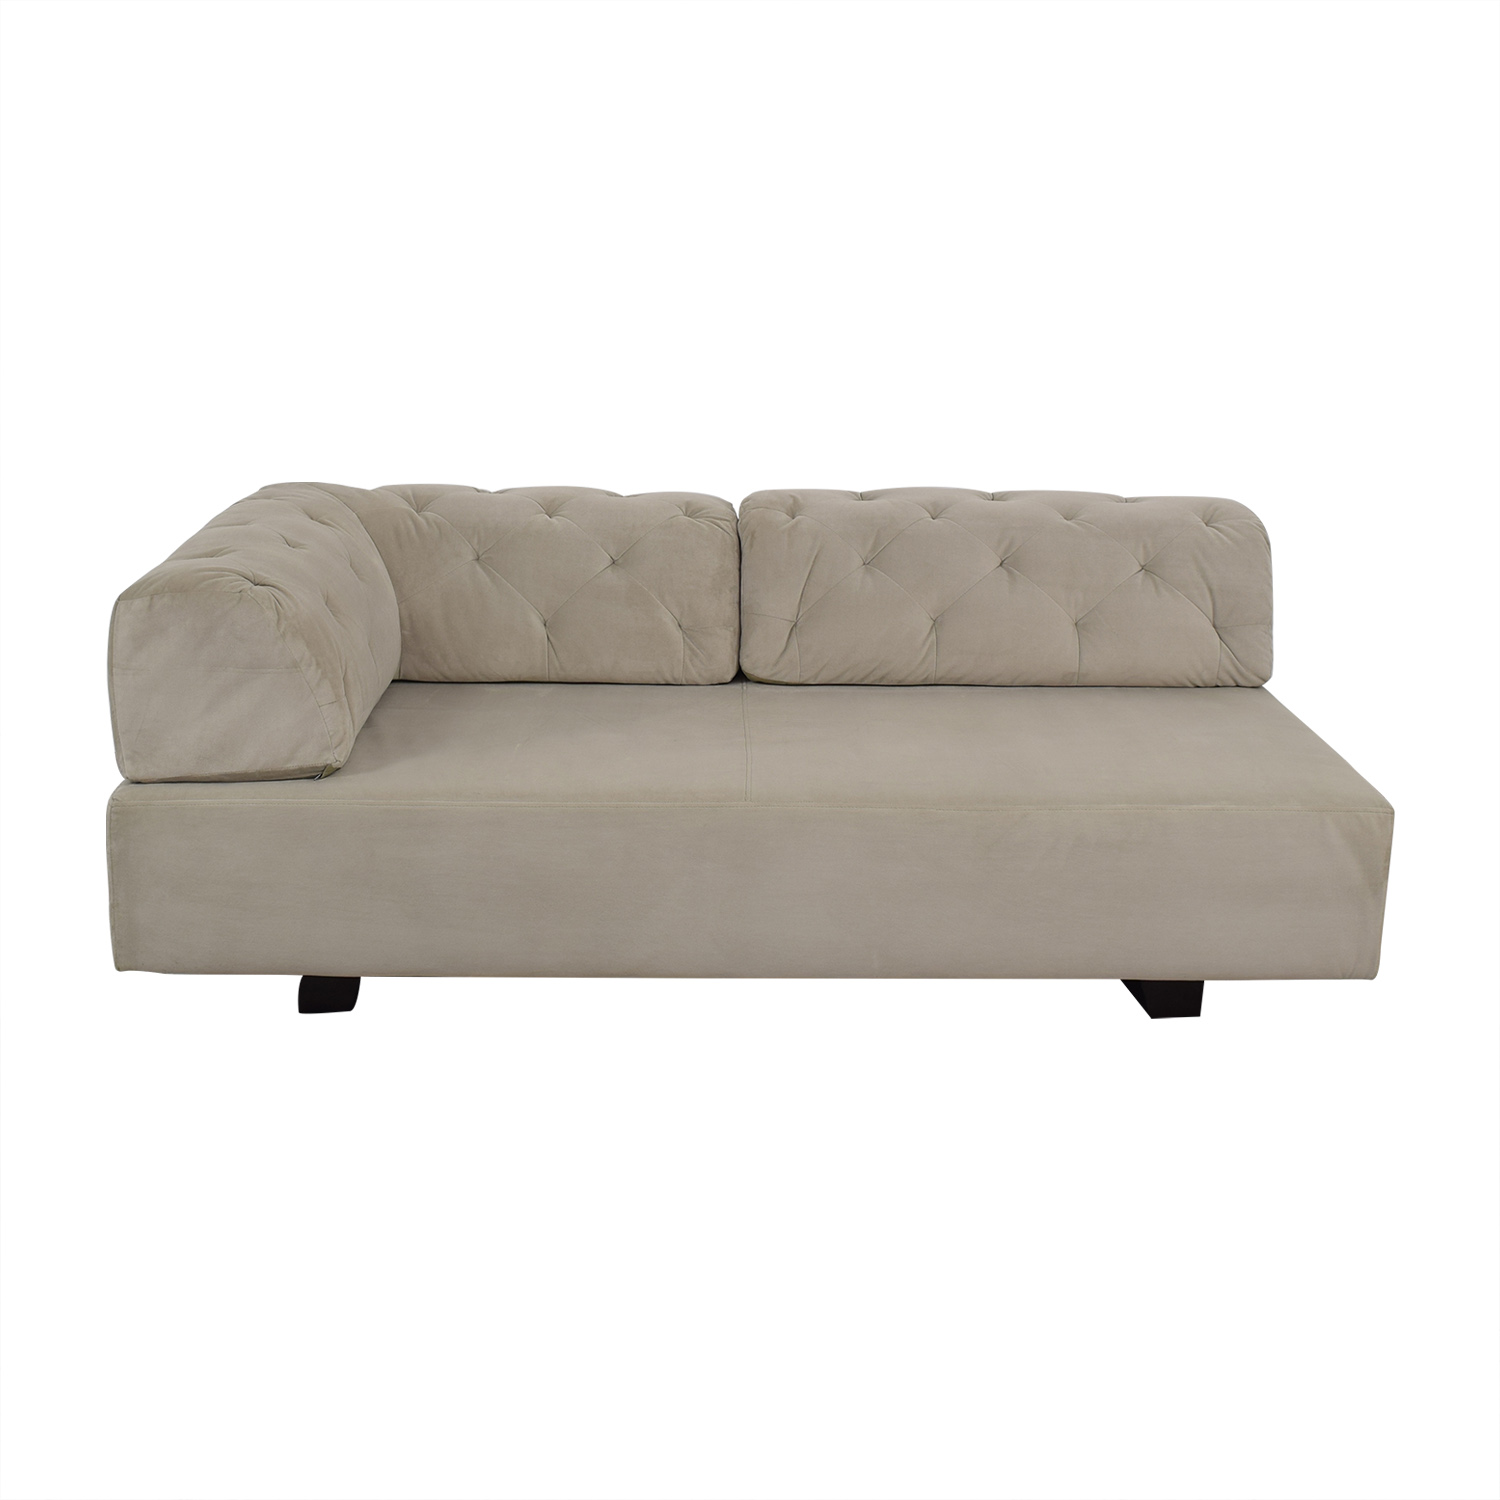 West Elm West Elm Tillary Tufted Sofa discount